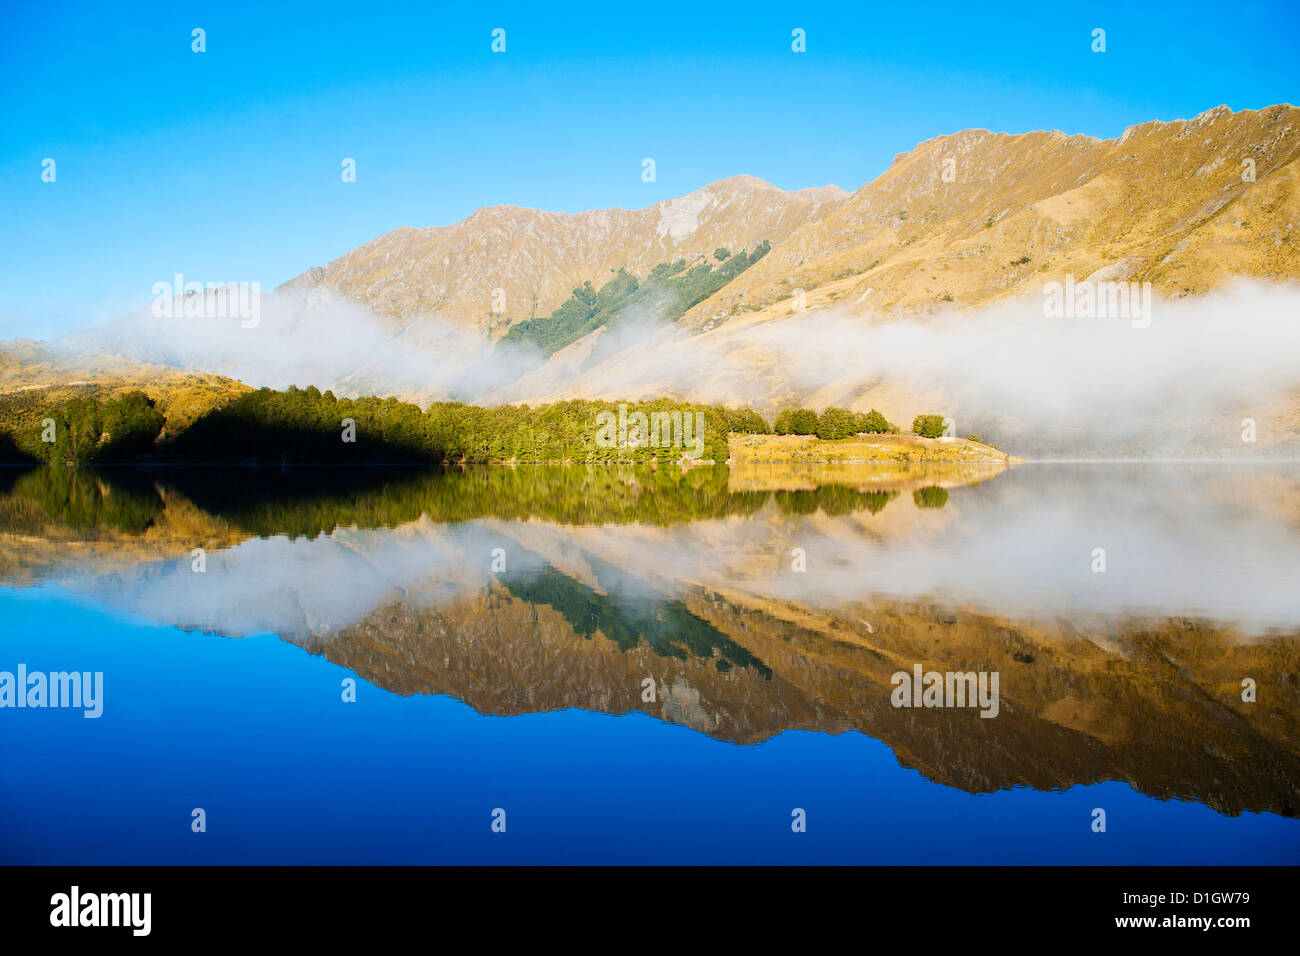 Misty dawn reflections on calm Lake Moke, Queenstown, Otago, South Island, New Zealand, Pacific - Stock Image